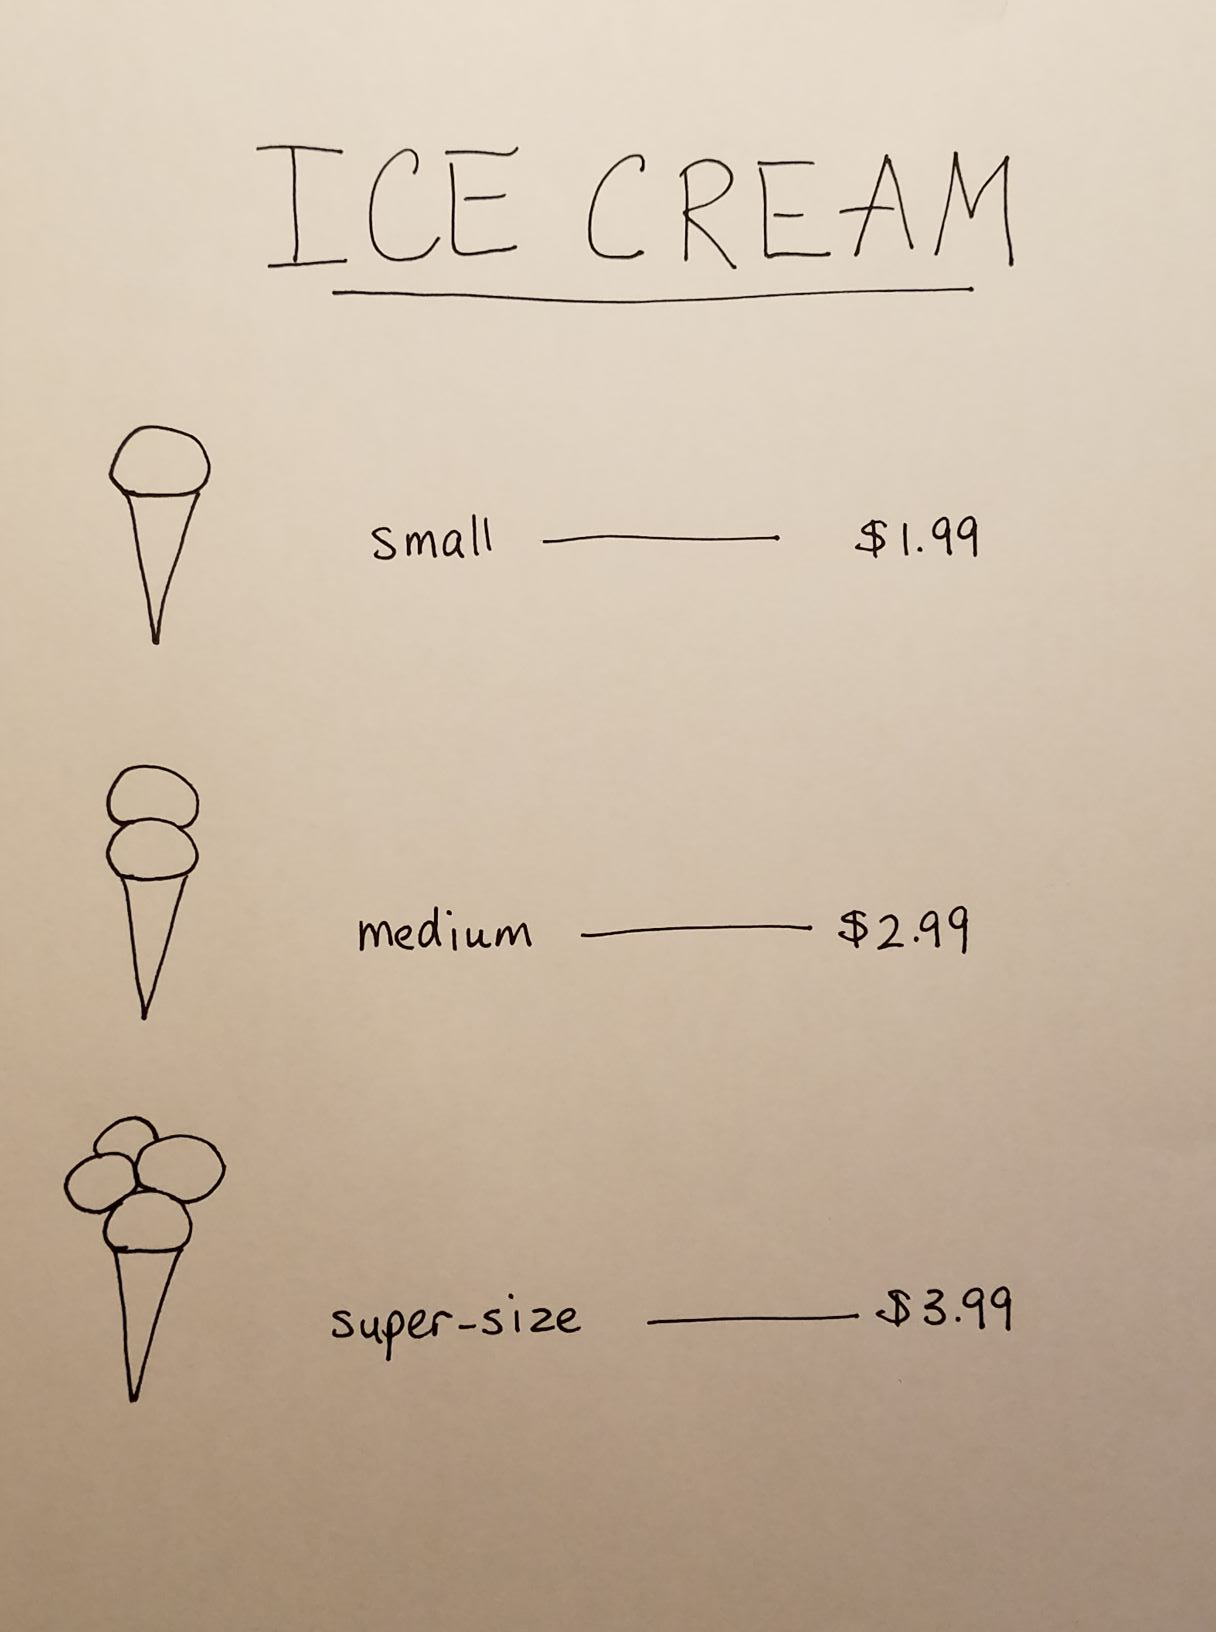 ice cream price list.2mp.jpg